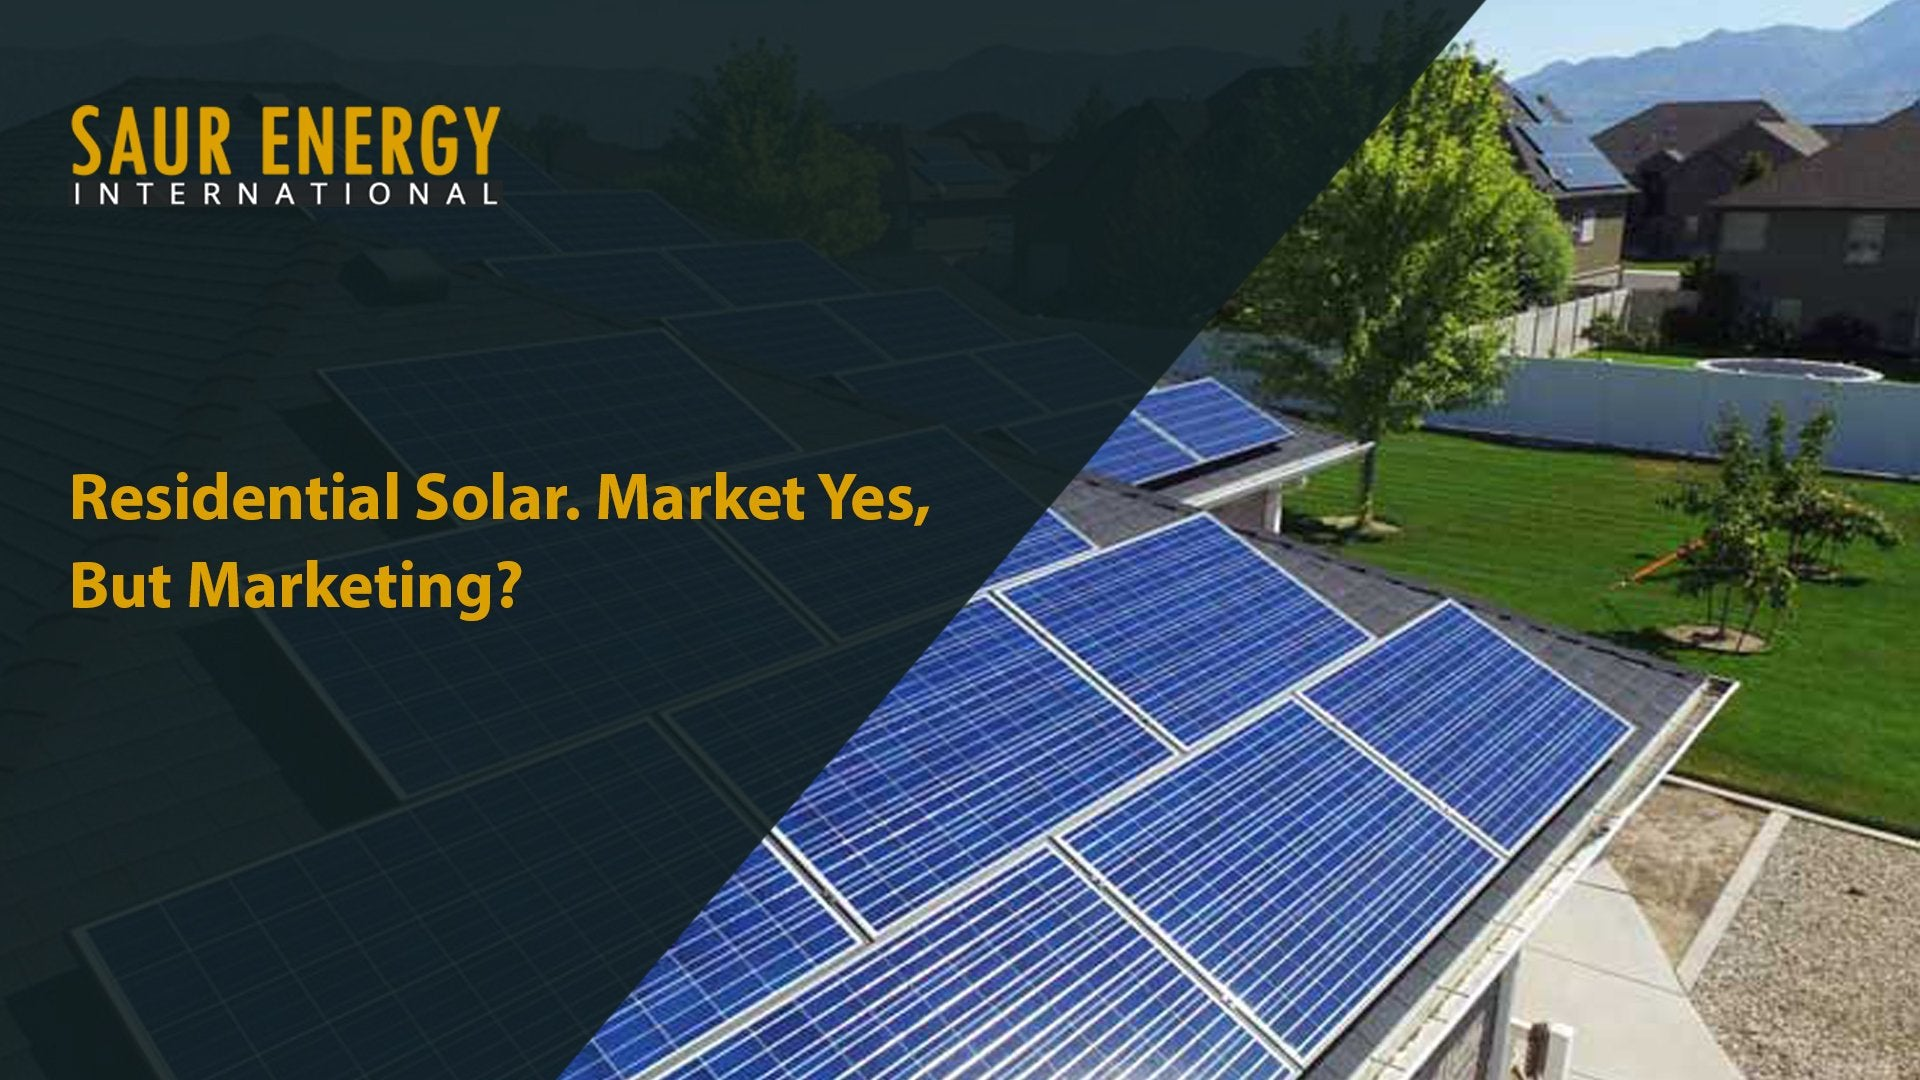 Residential Solar. Market Yes, But Marketing?